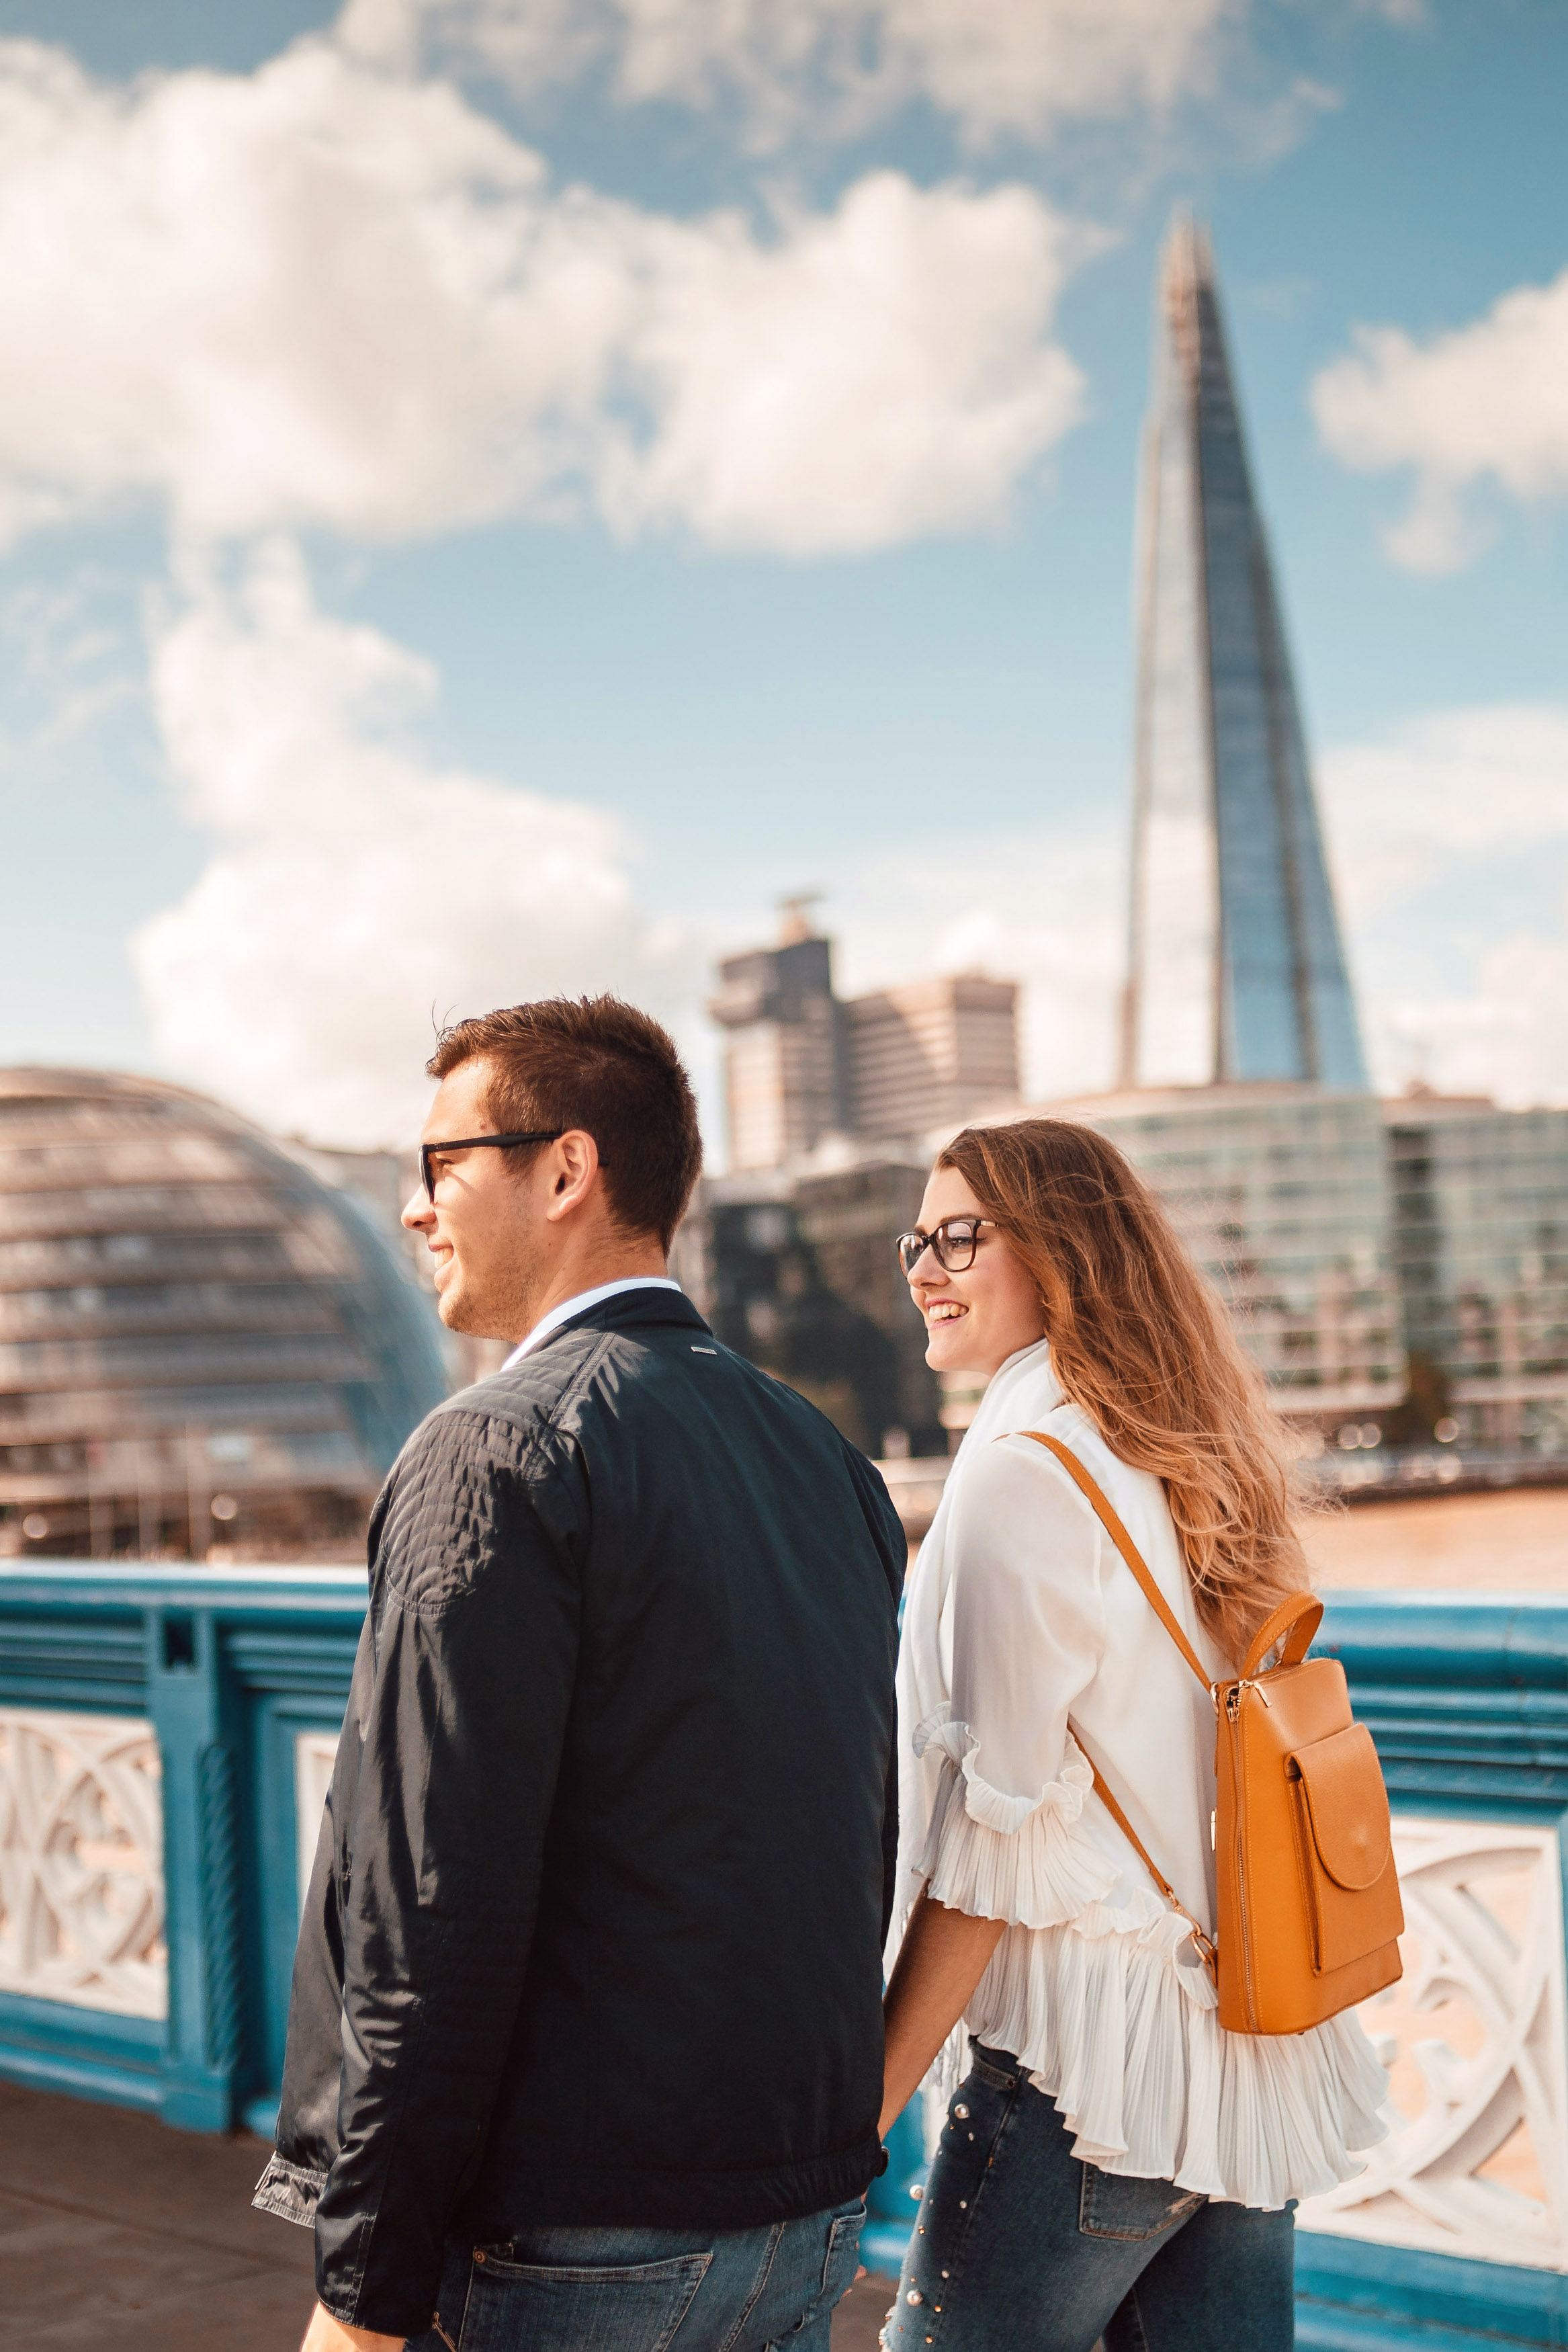 Destination_Wedding_London_Engagement_Session_Photographer-138.jpg